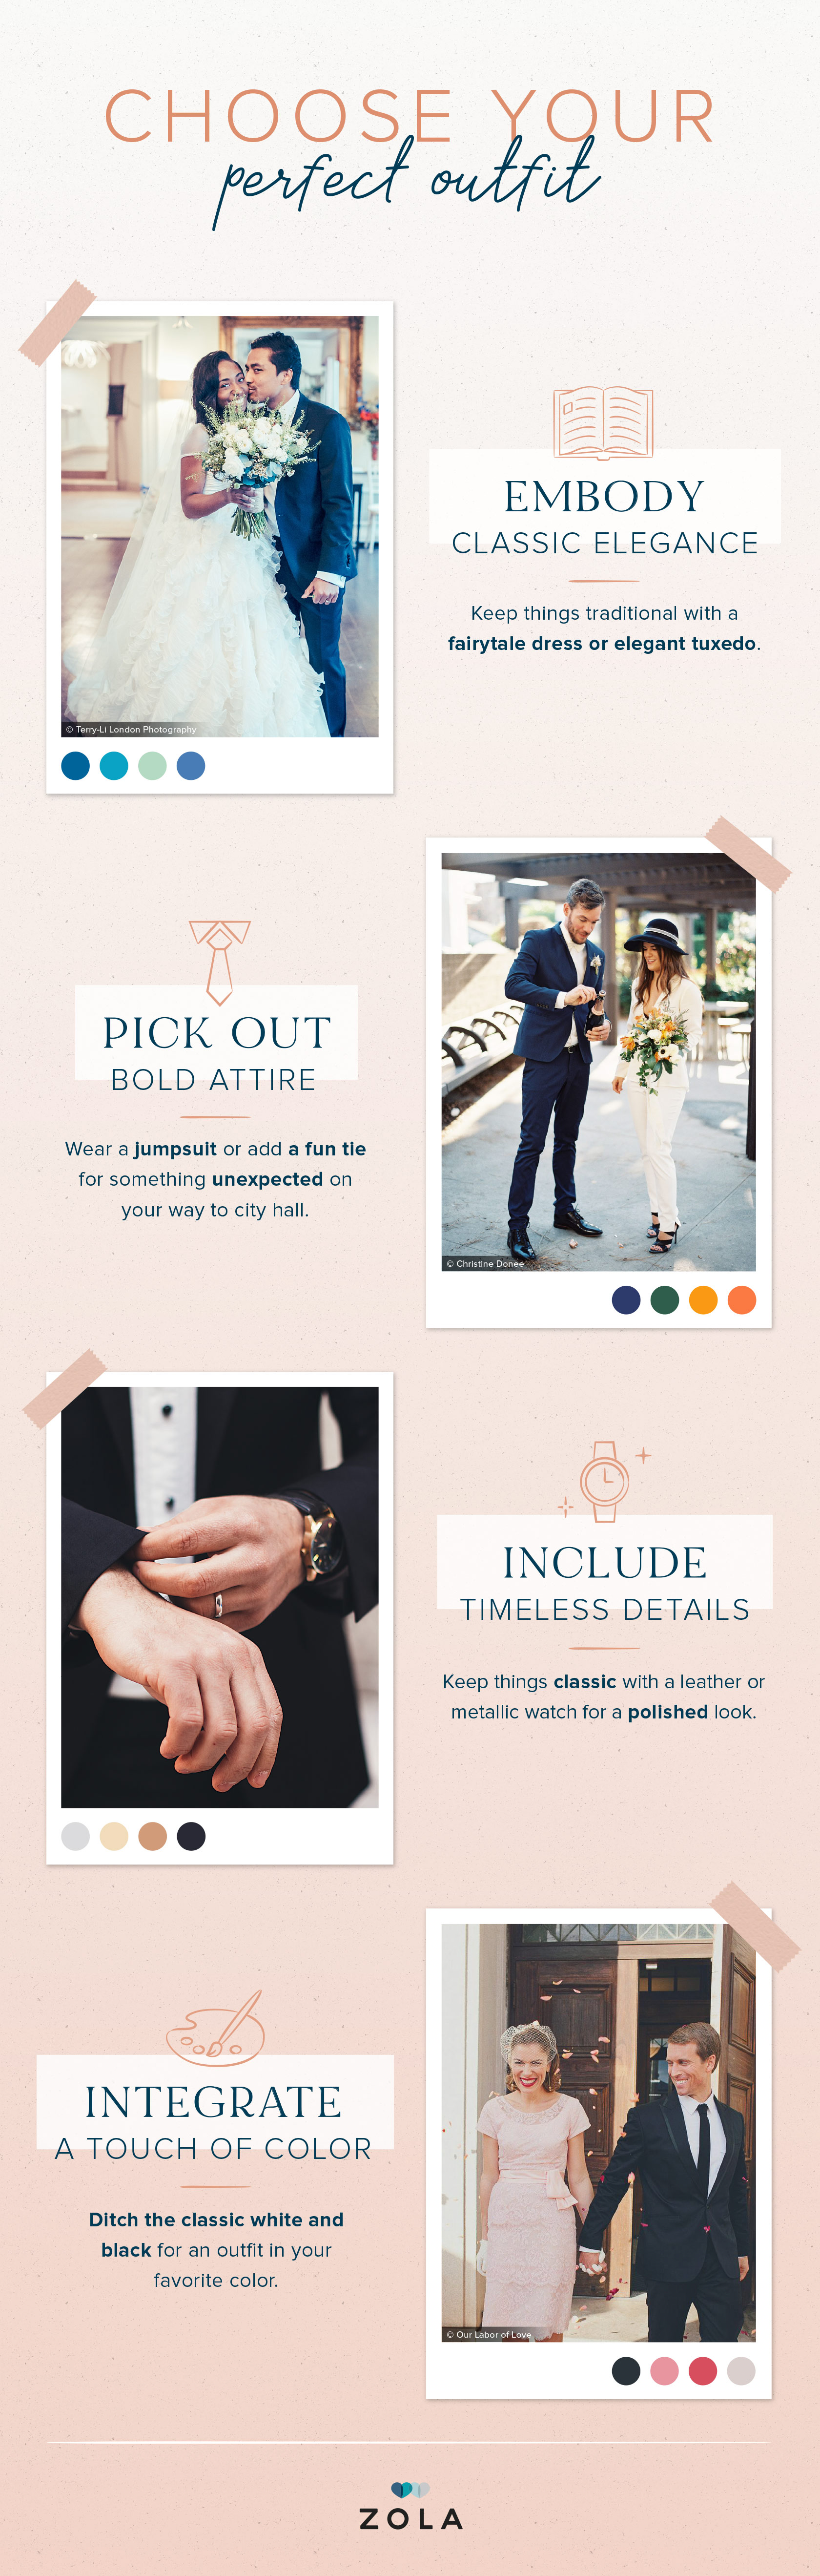 24-city-hall-wedding-ideas-for-your-perfect-day-perfect-outfit